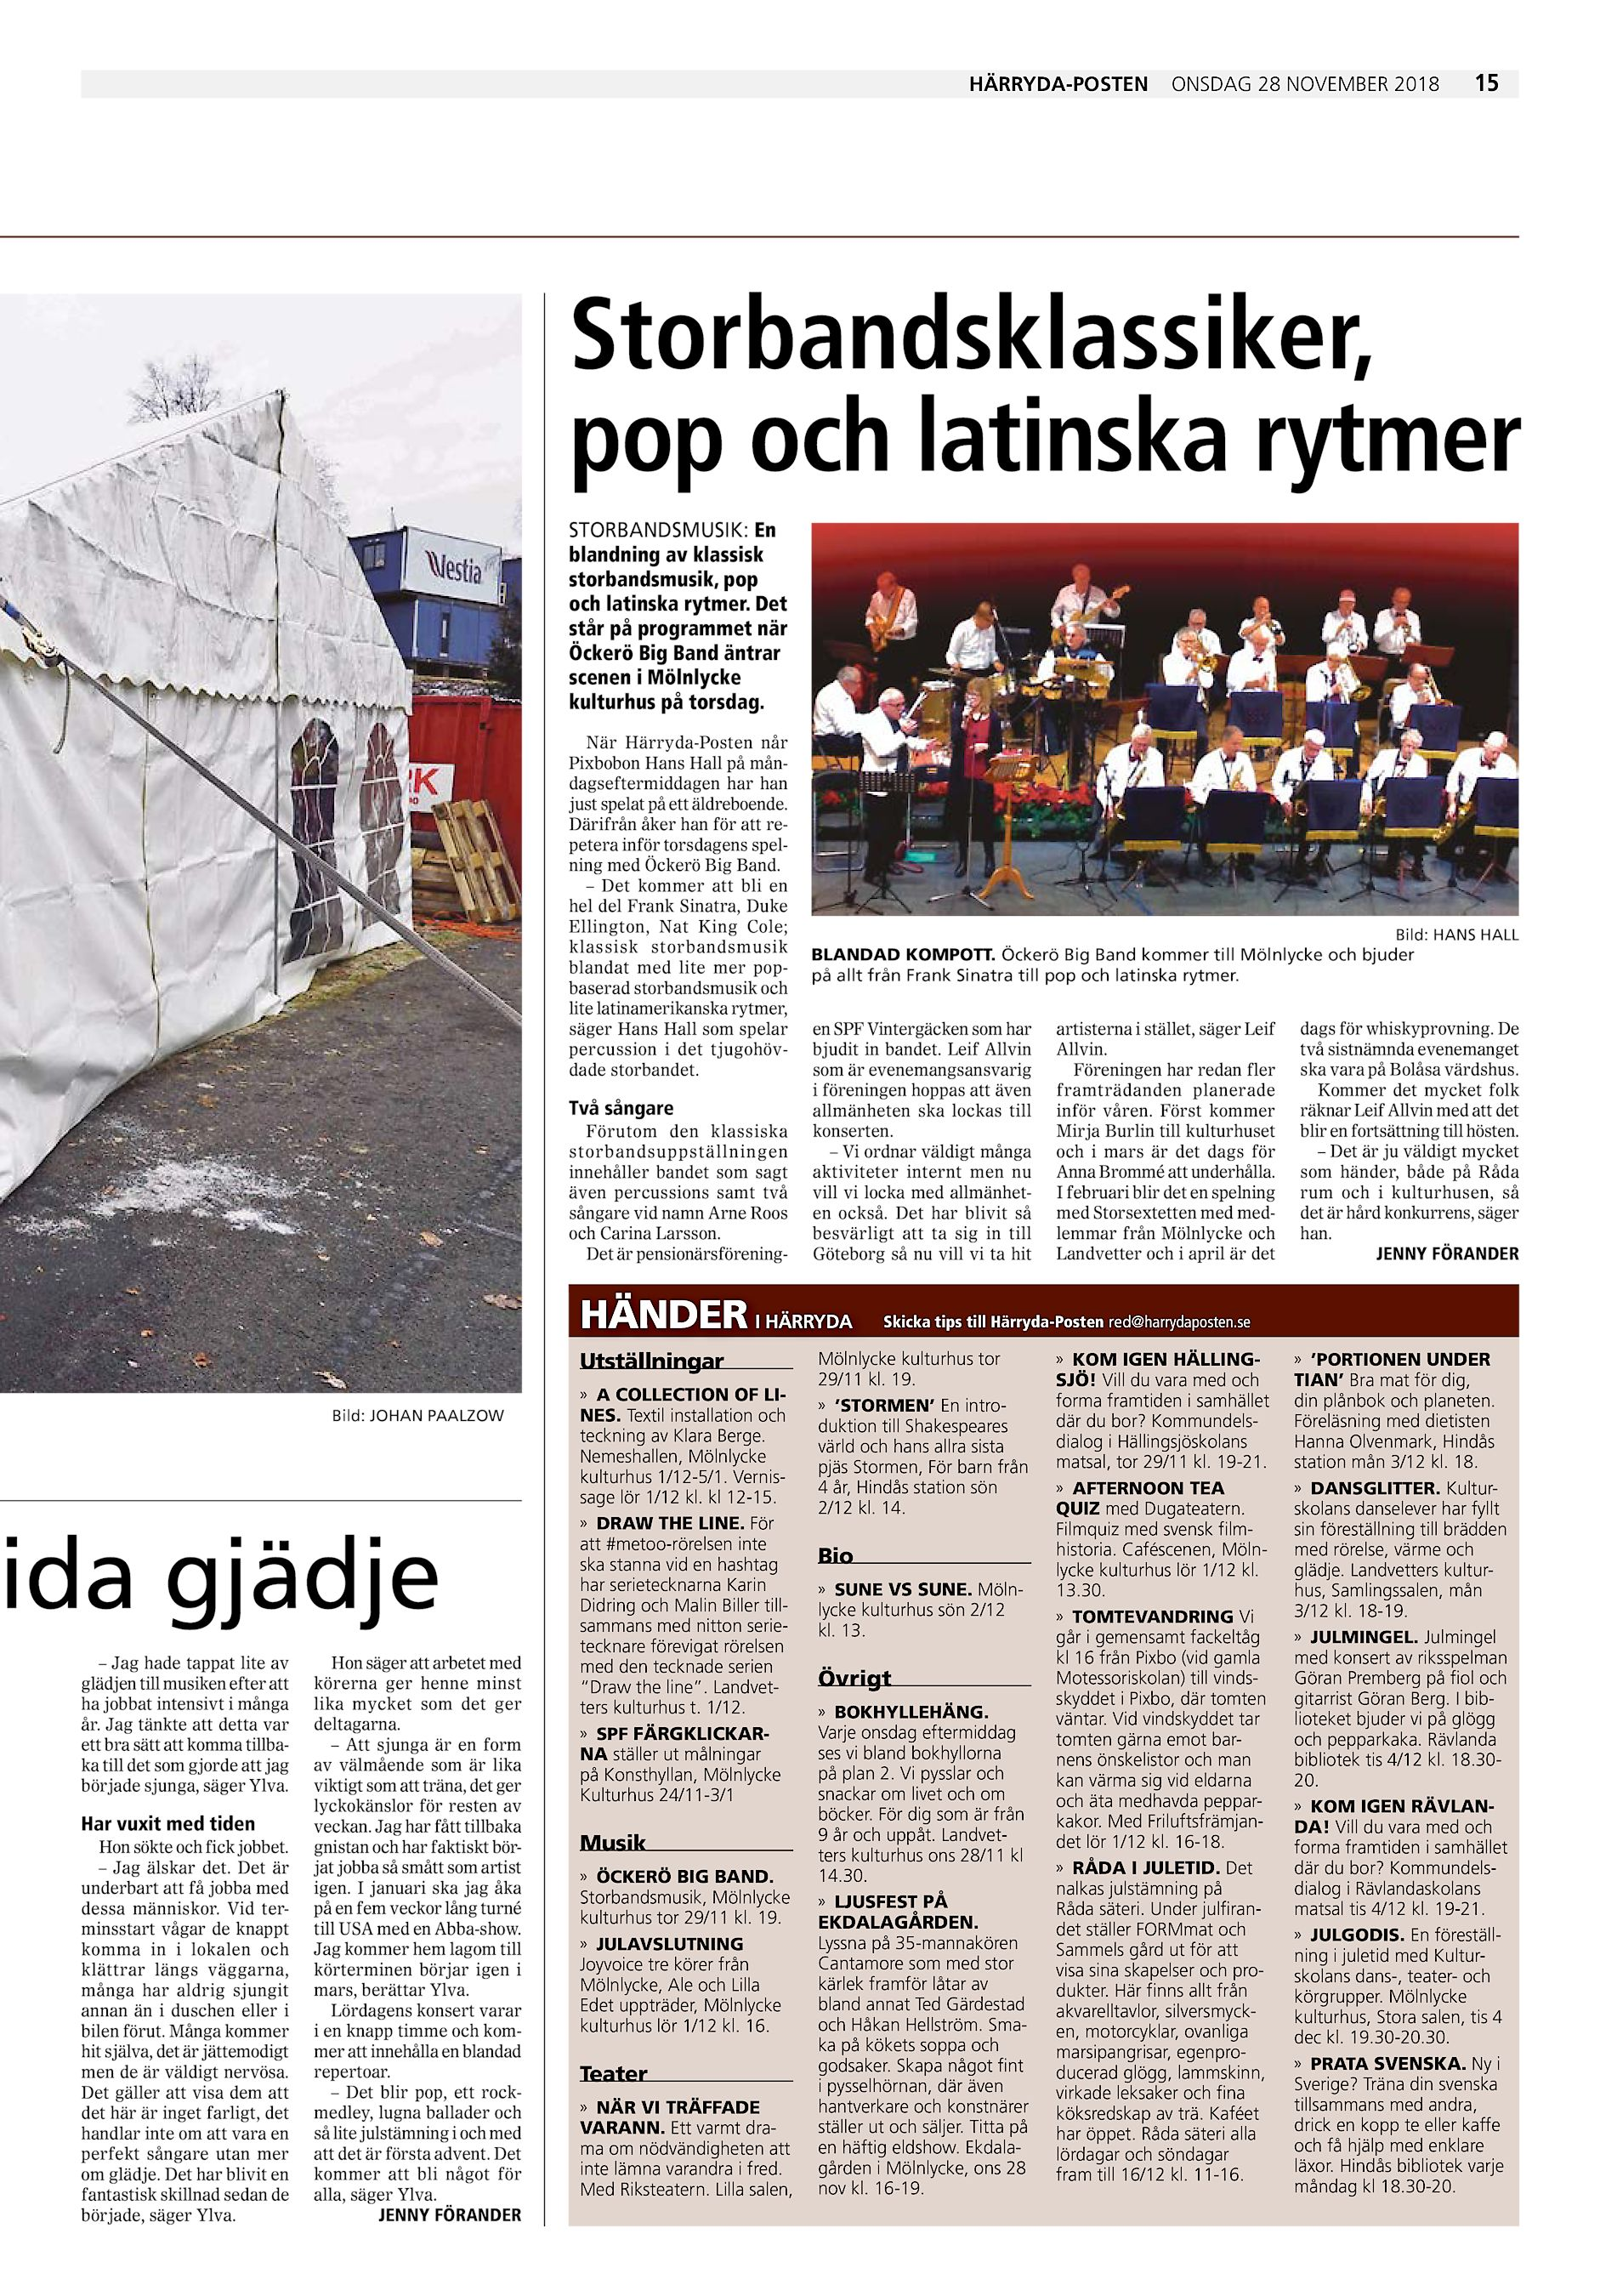 Hrrydaposten / Partille Tidning HP-2016-04-20 (endast text)